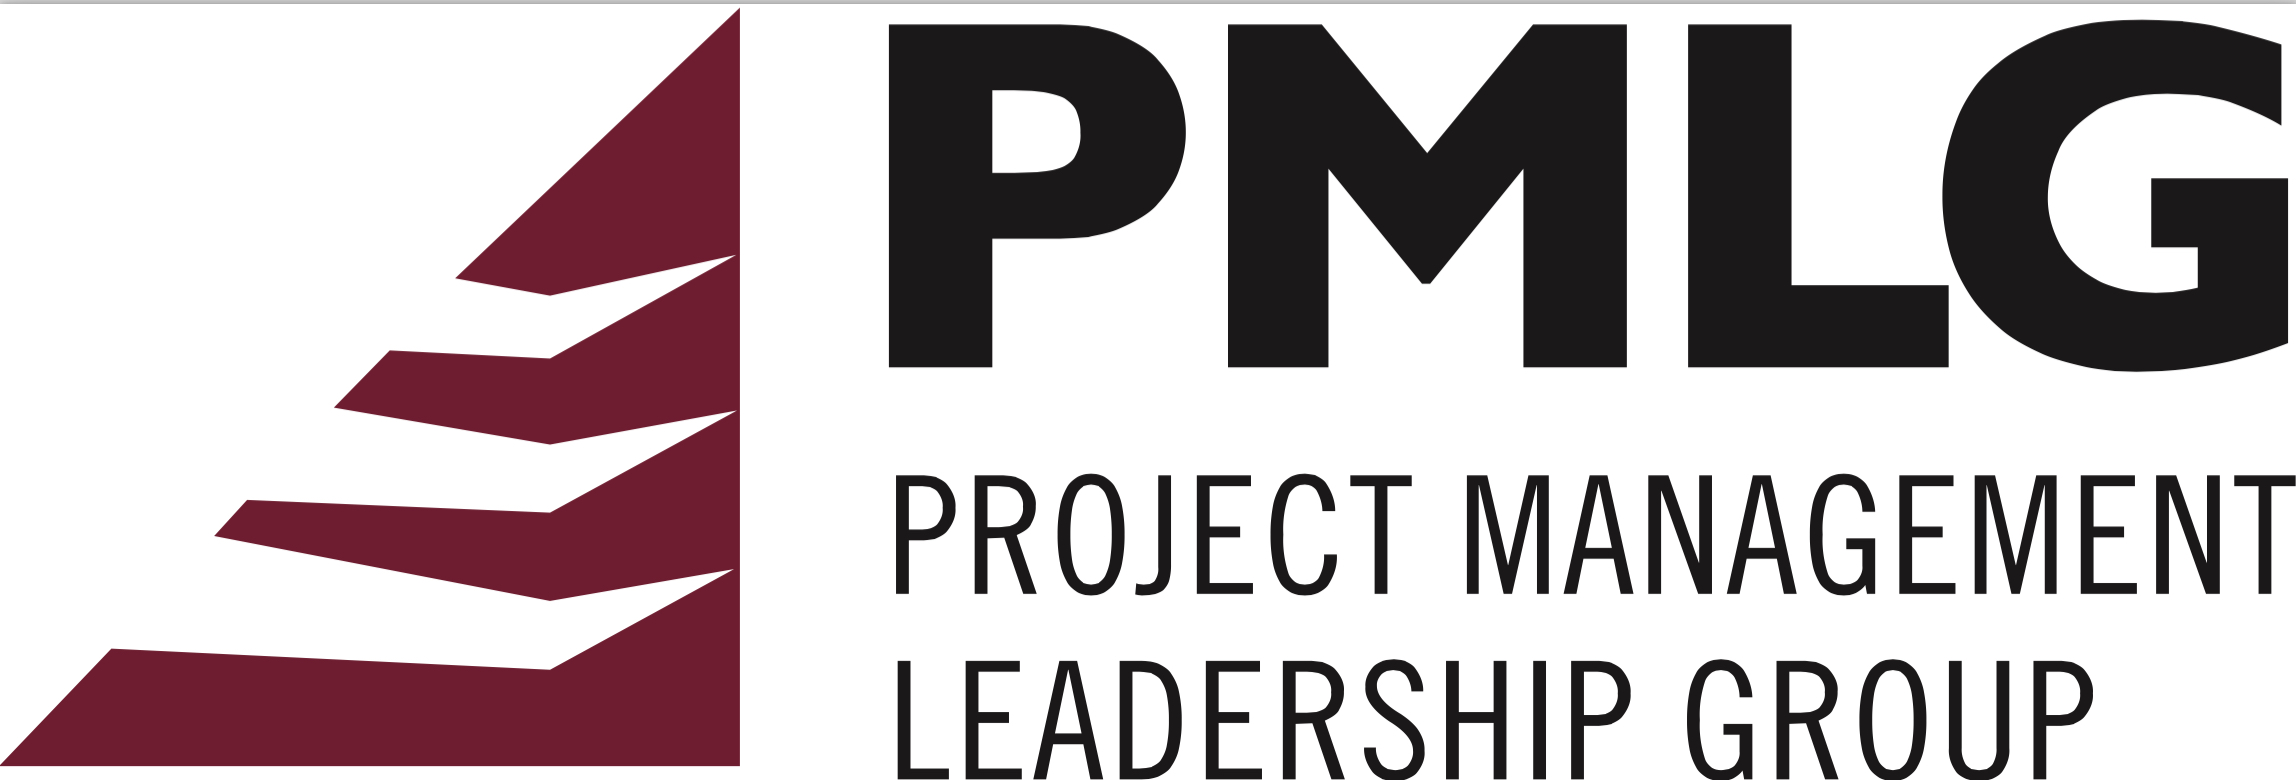 Drawing Sheet for PMLG logo